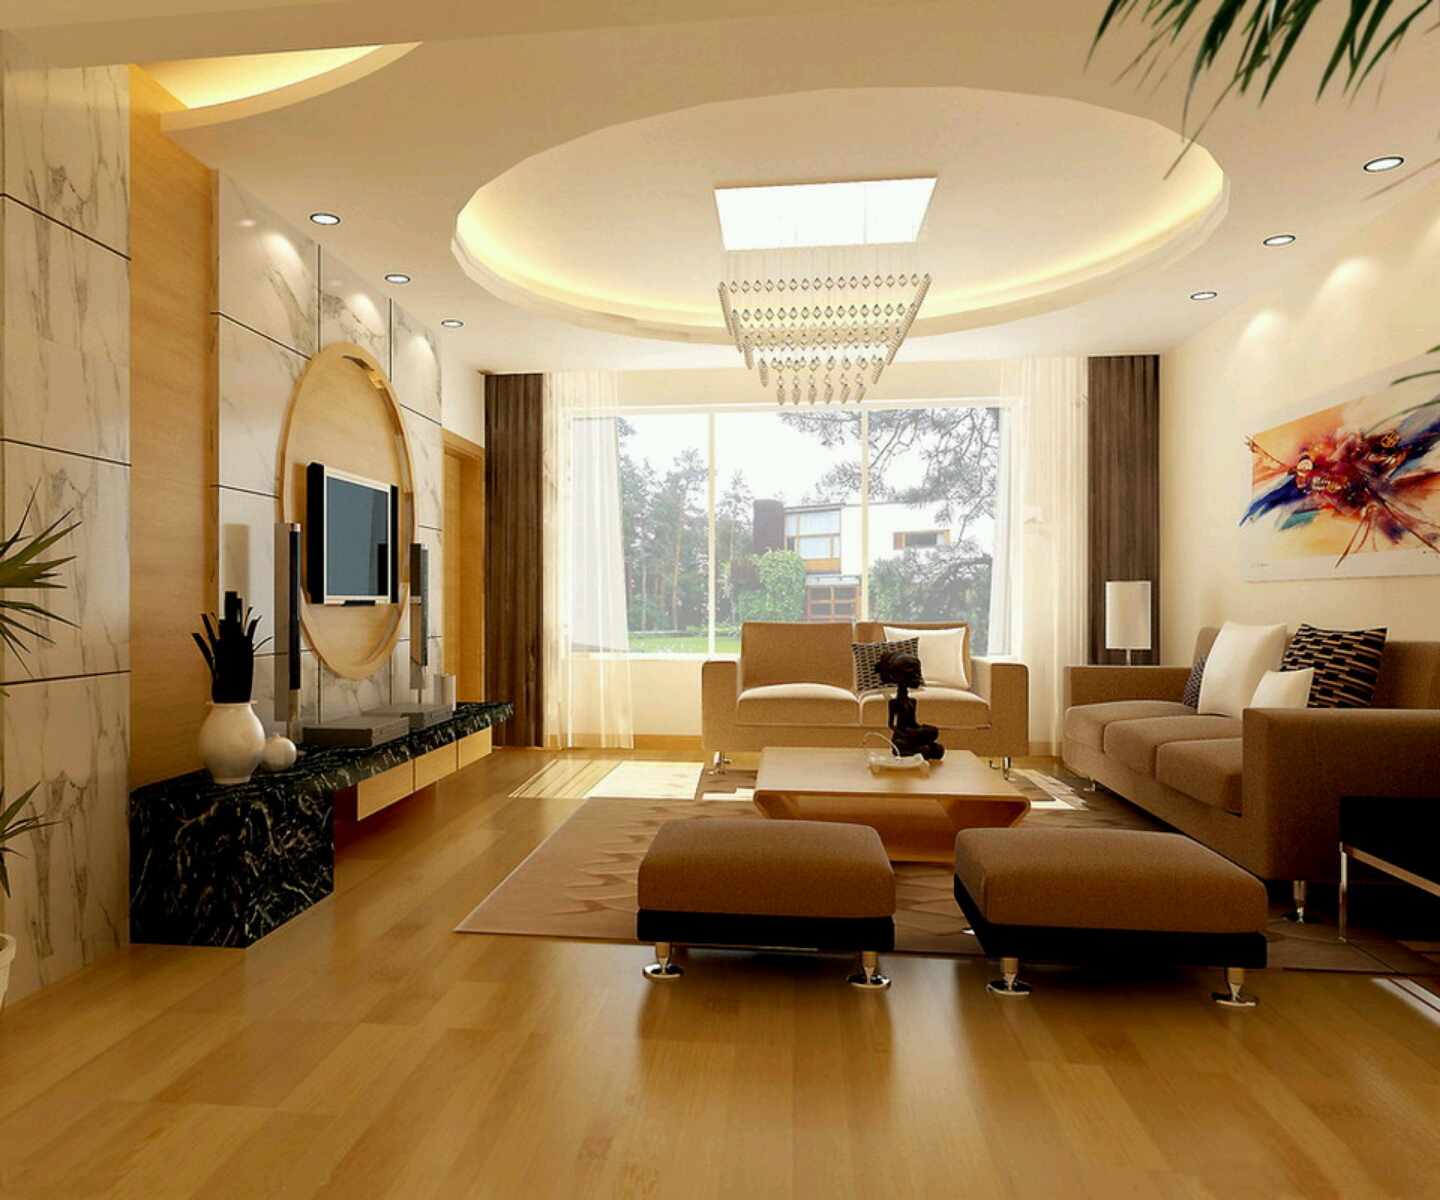 Modern interior decoration living rooms ceiling designs for Designs of interior living rooms